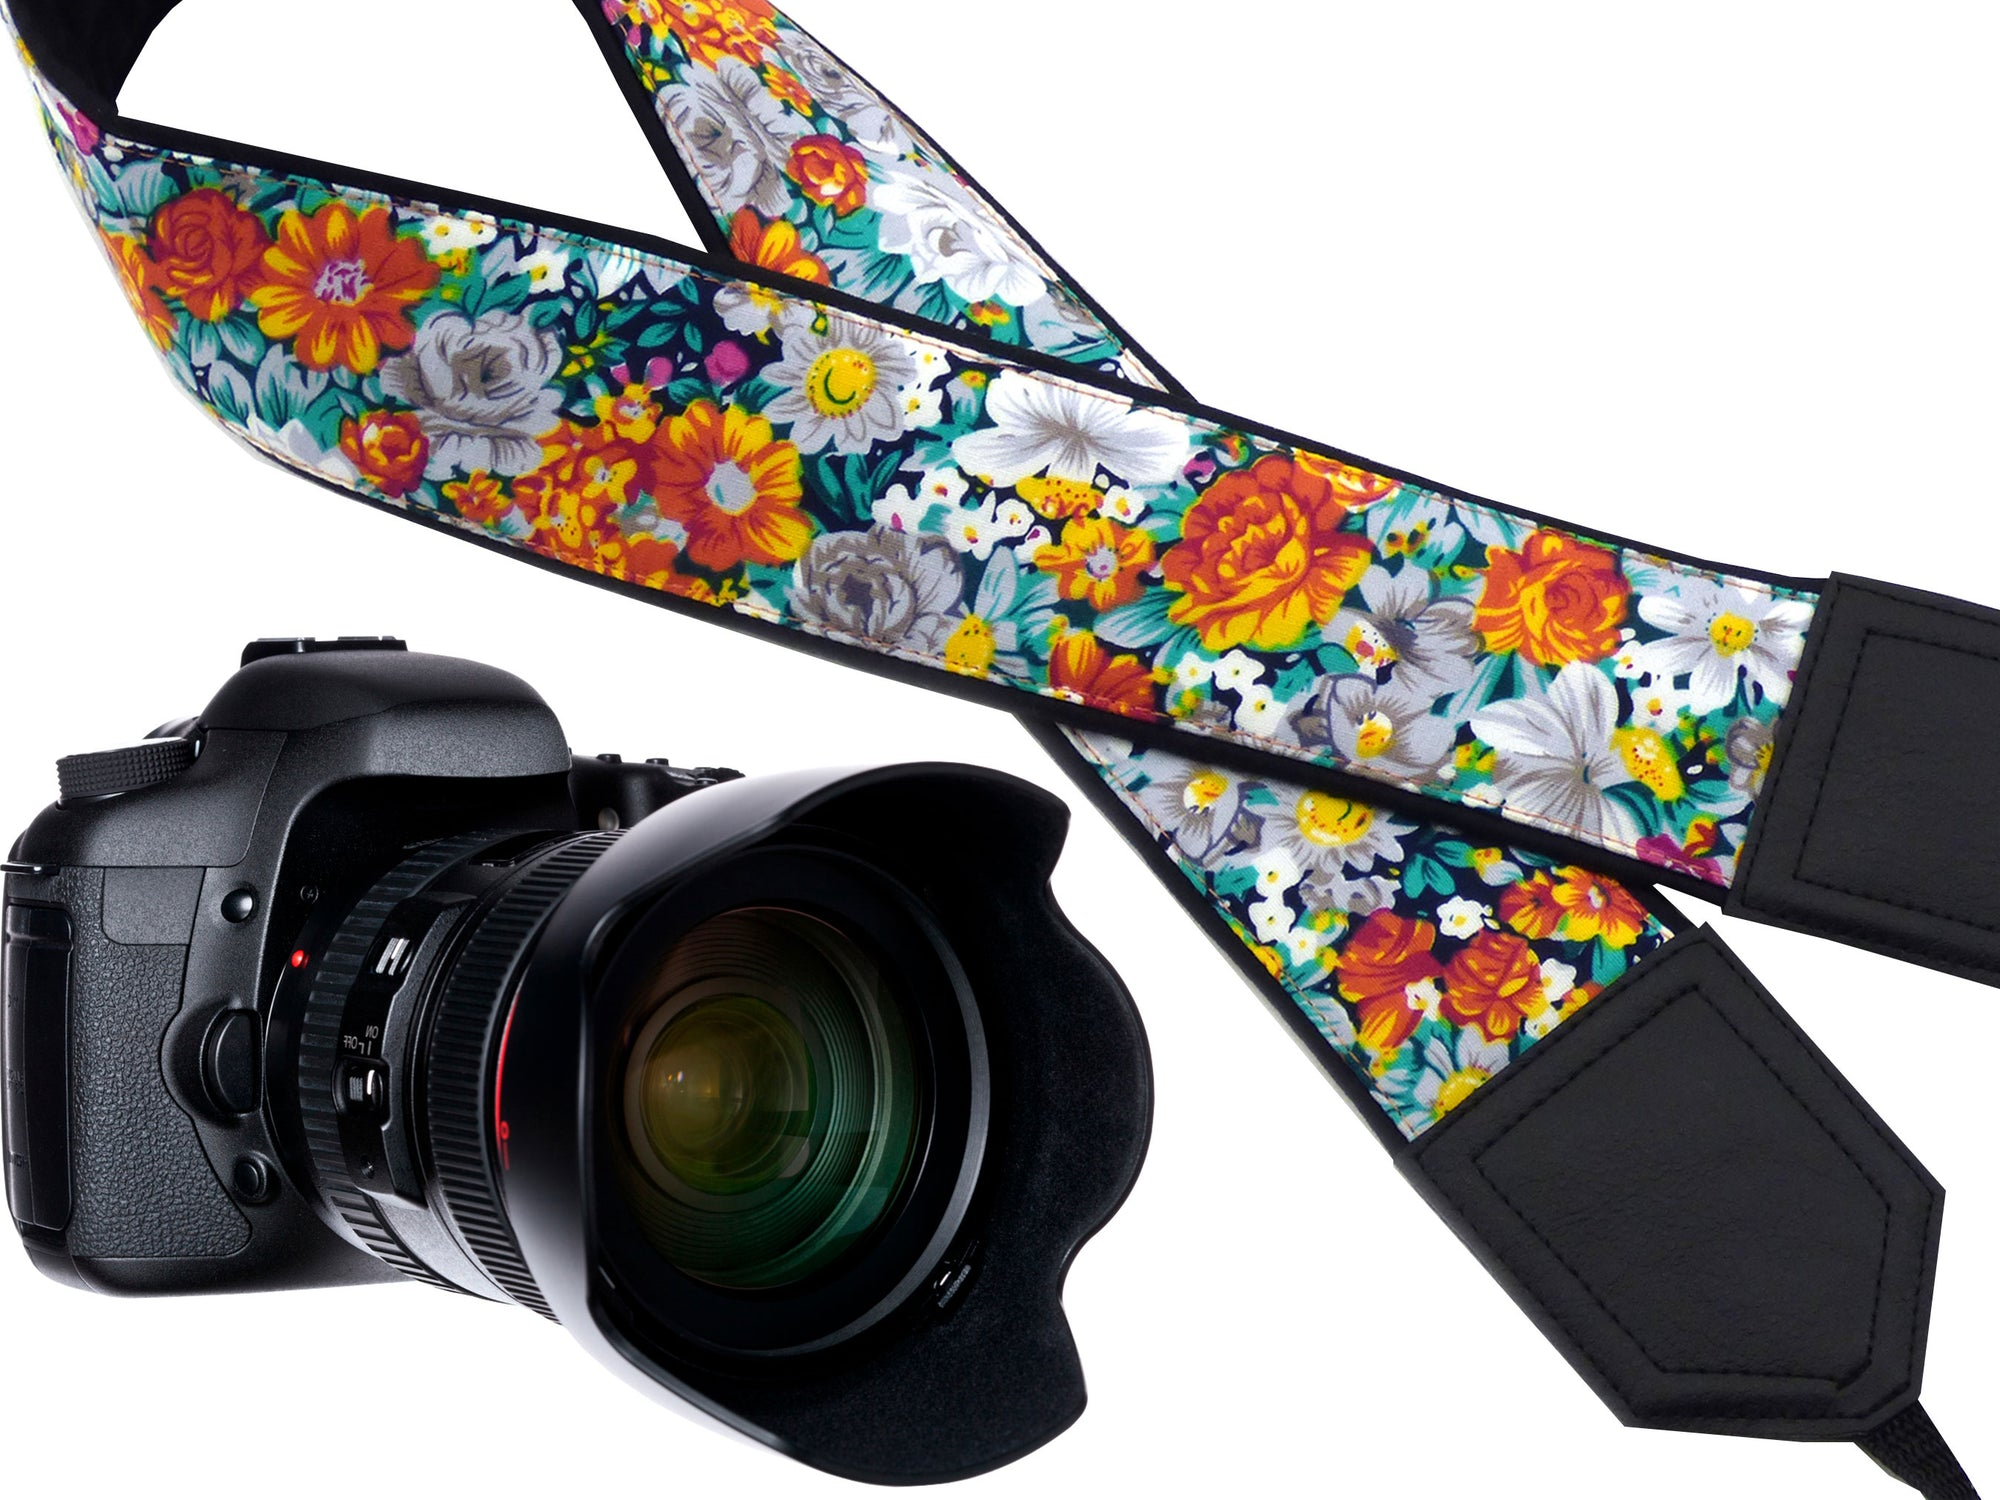 Flowers Camera strap. Personalized camera strap with flowers design. DSLR / SLR Camera Strap. Camera accessories by InTePro